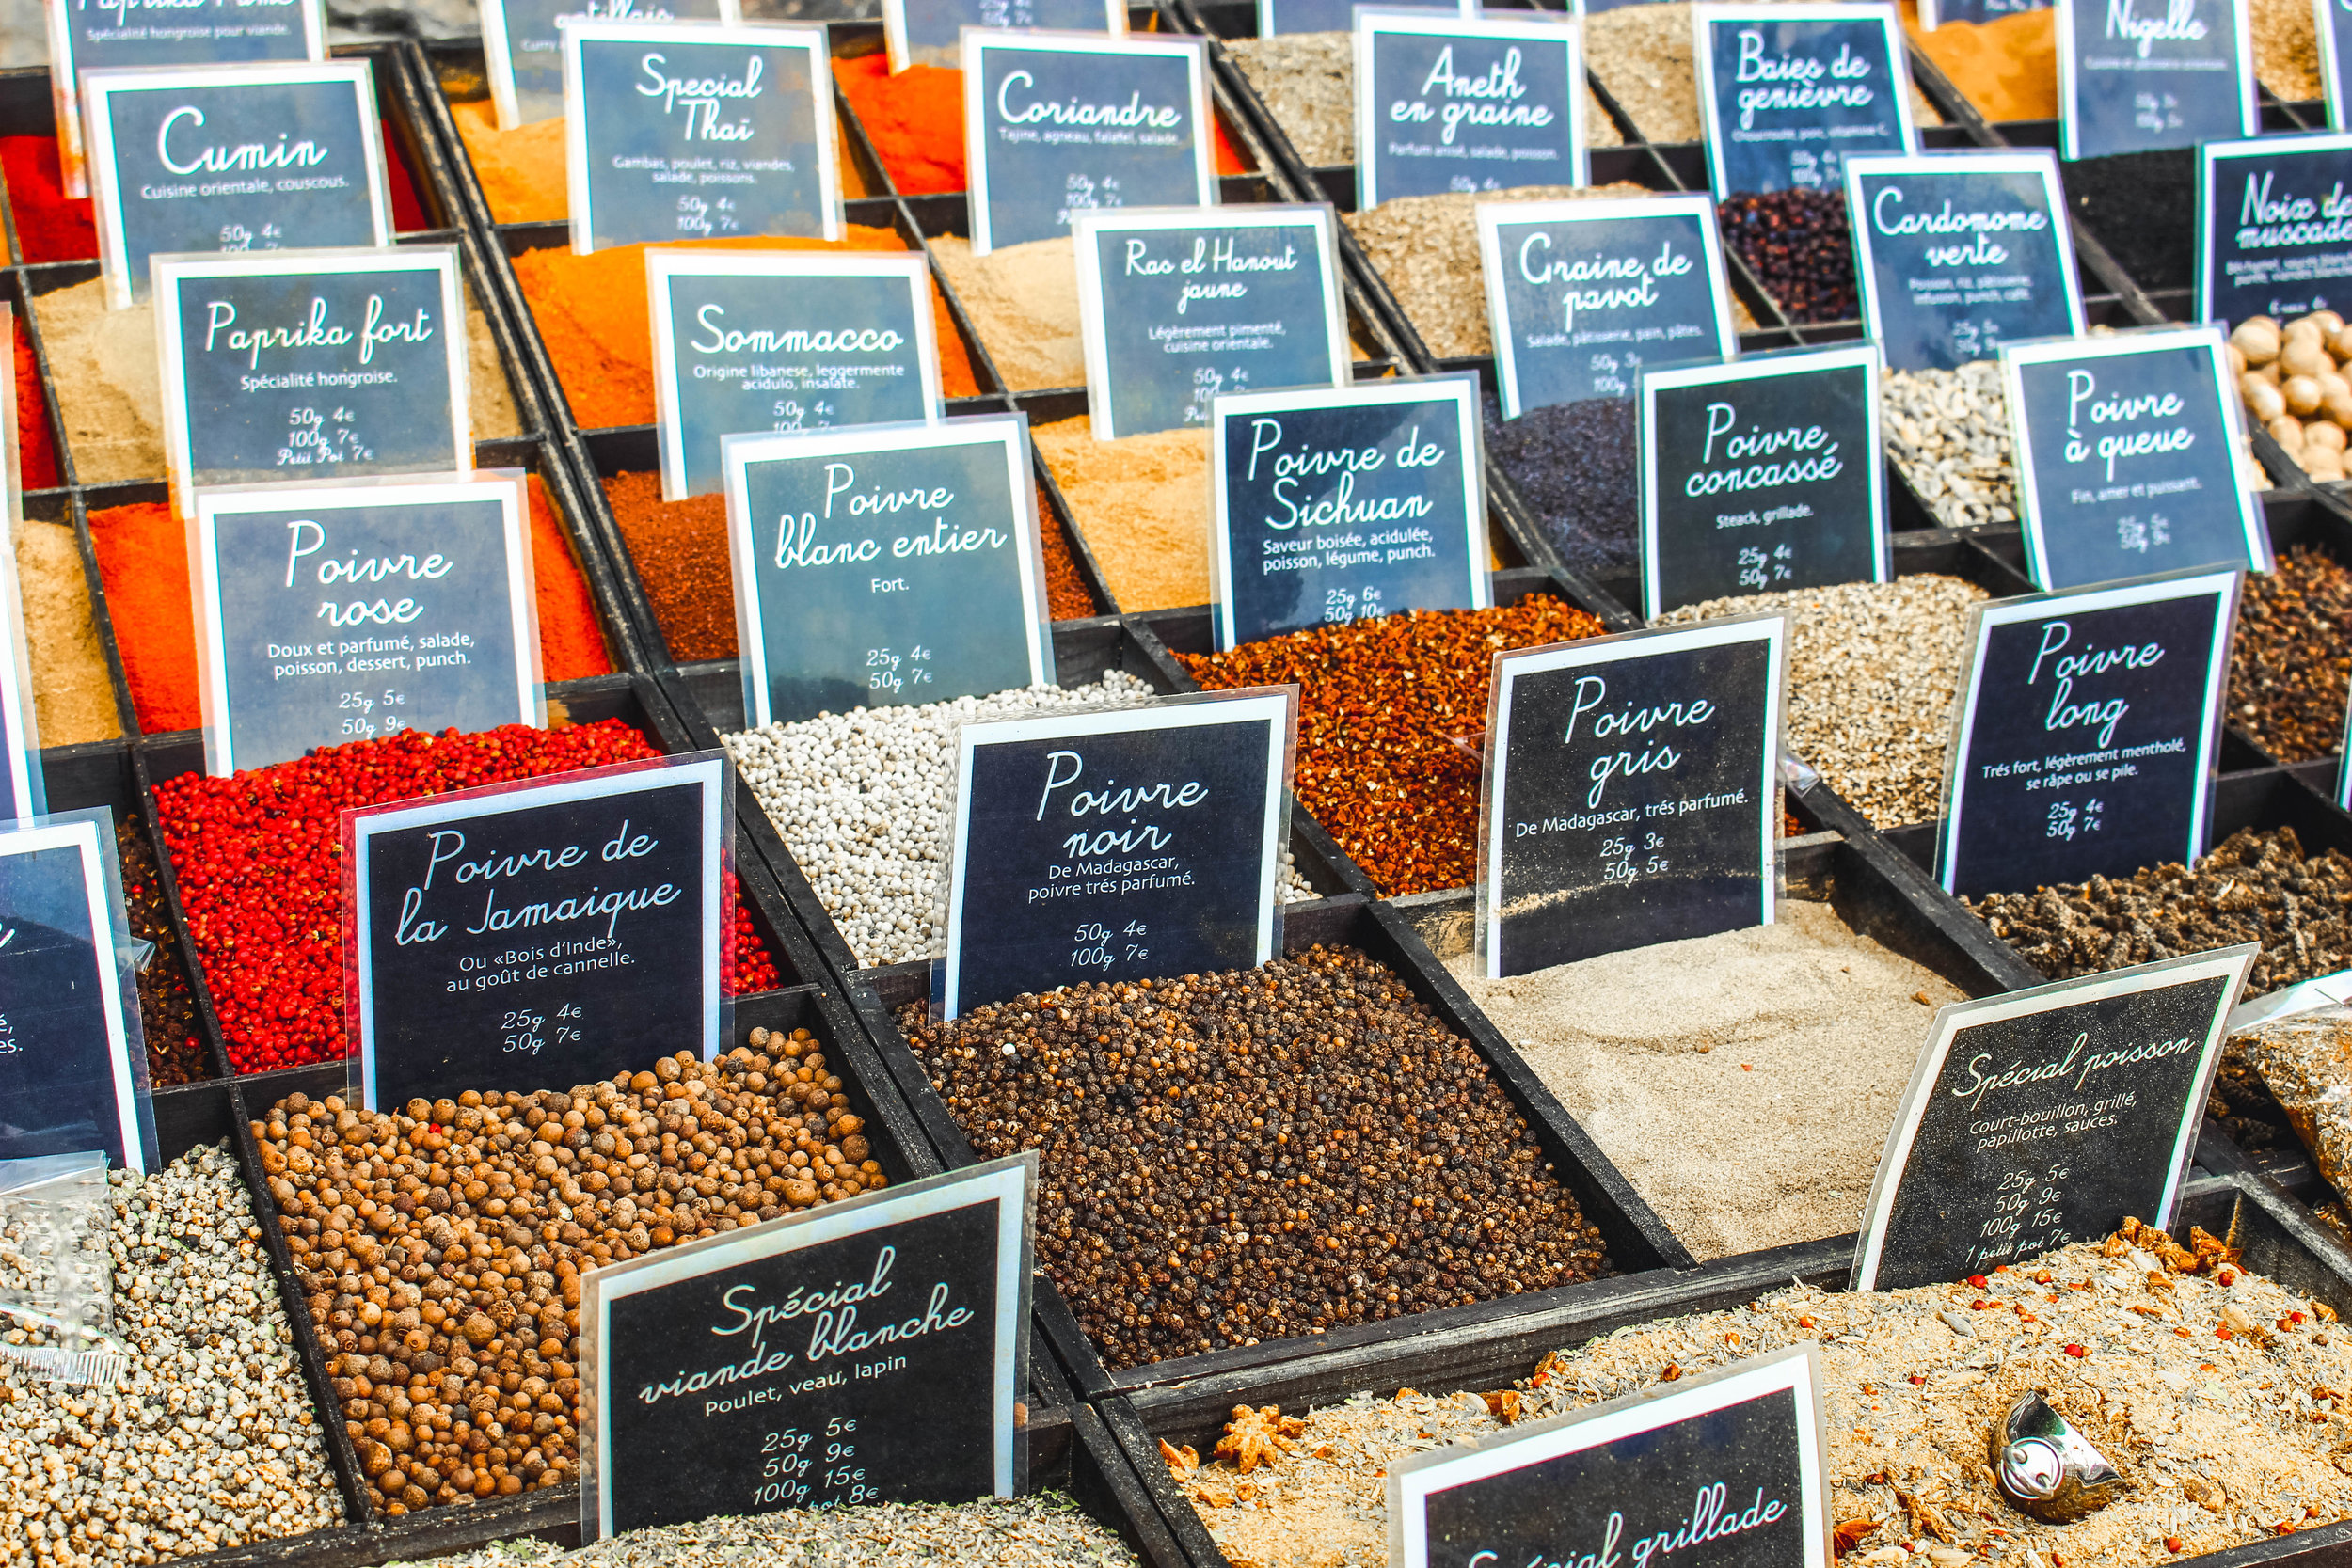 Spice Market in Eze